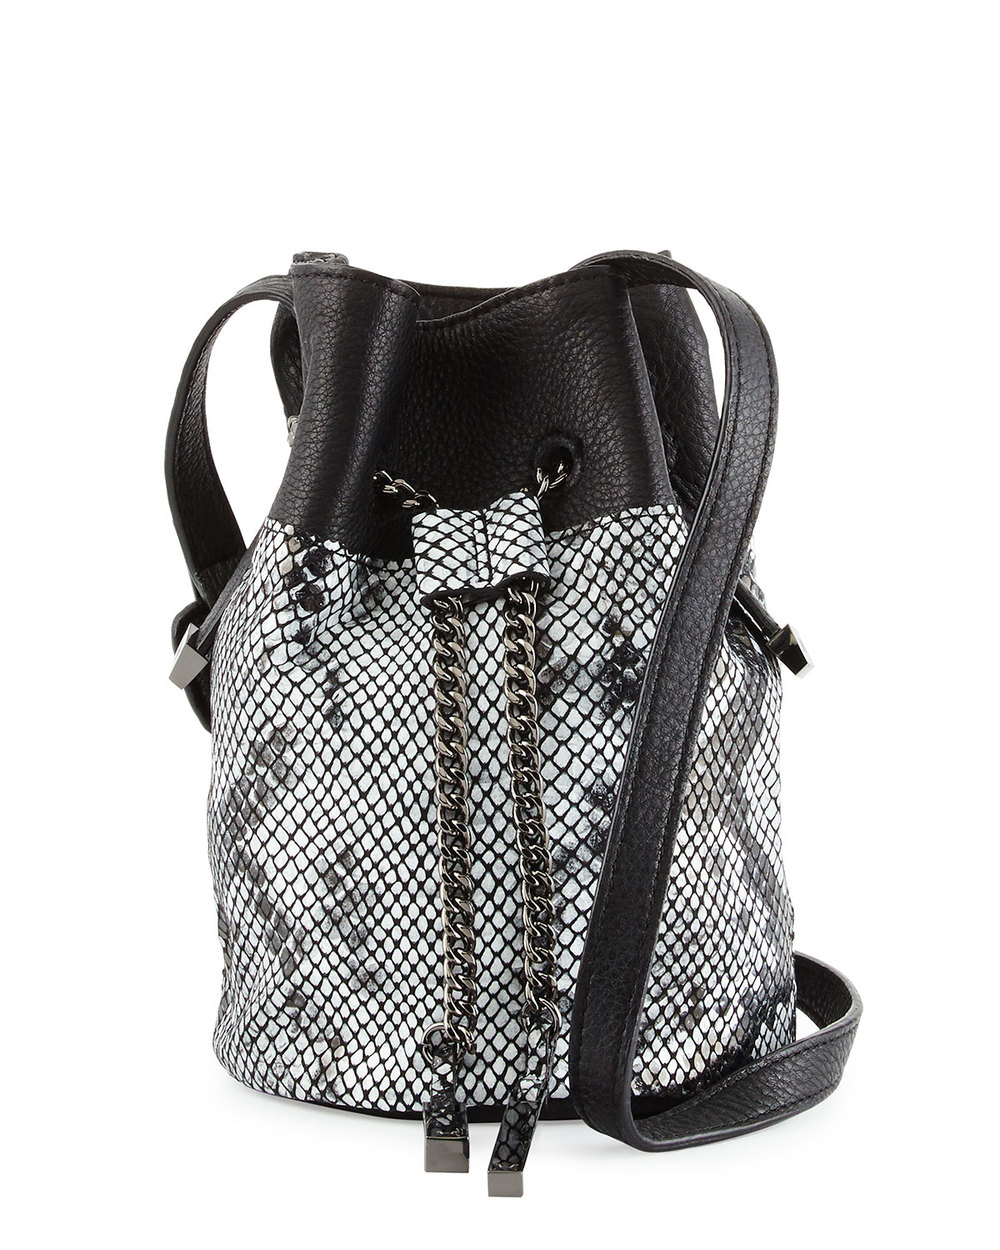 Halston Heritage Snake-Embossed Leather Bucket Bag, Black/Multi • $194.40 • Neiman Marcus